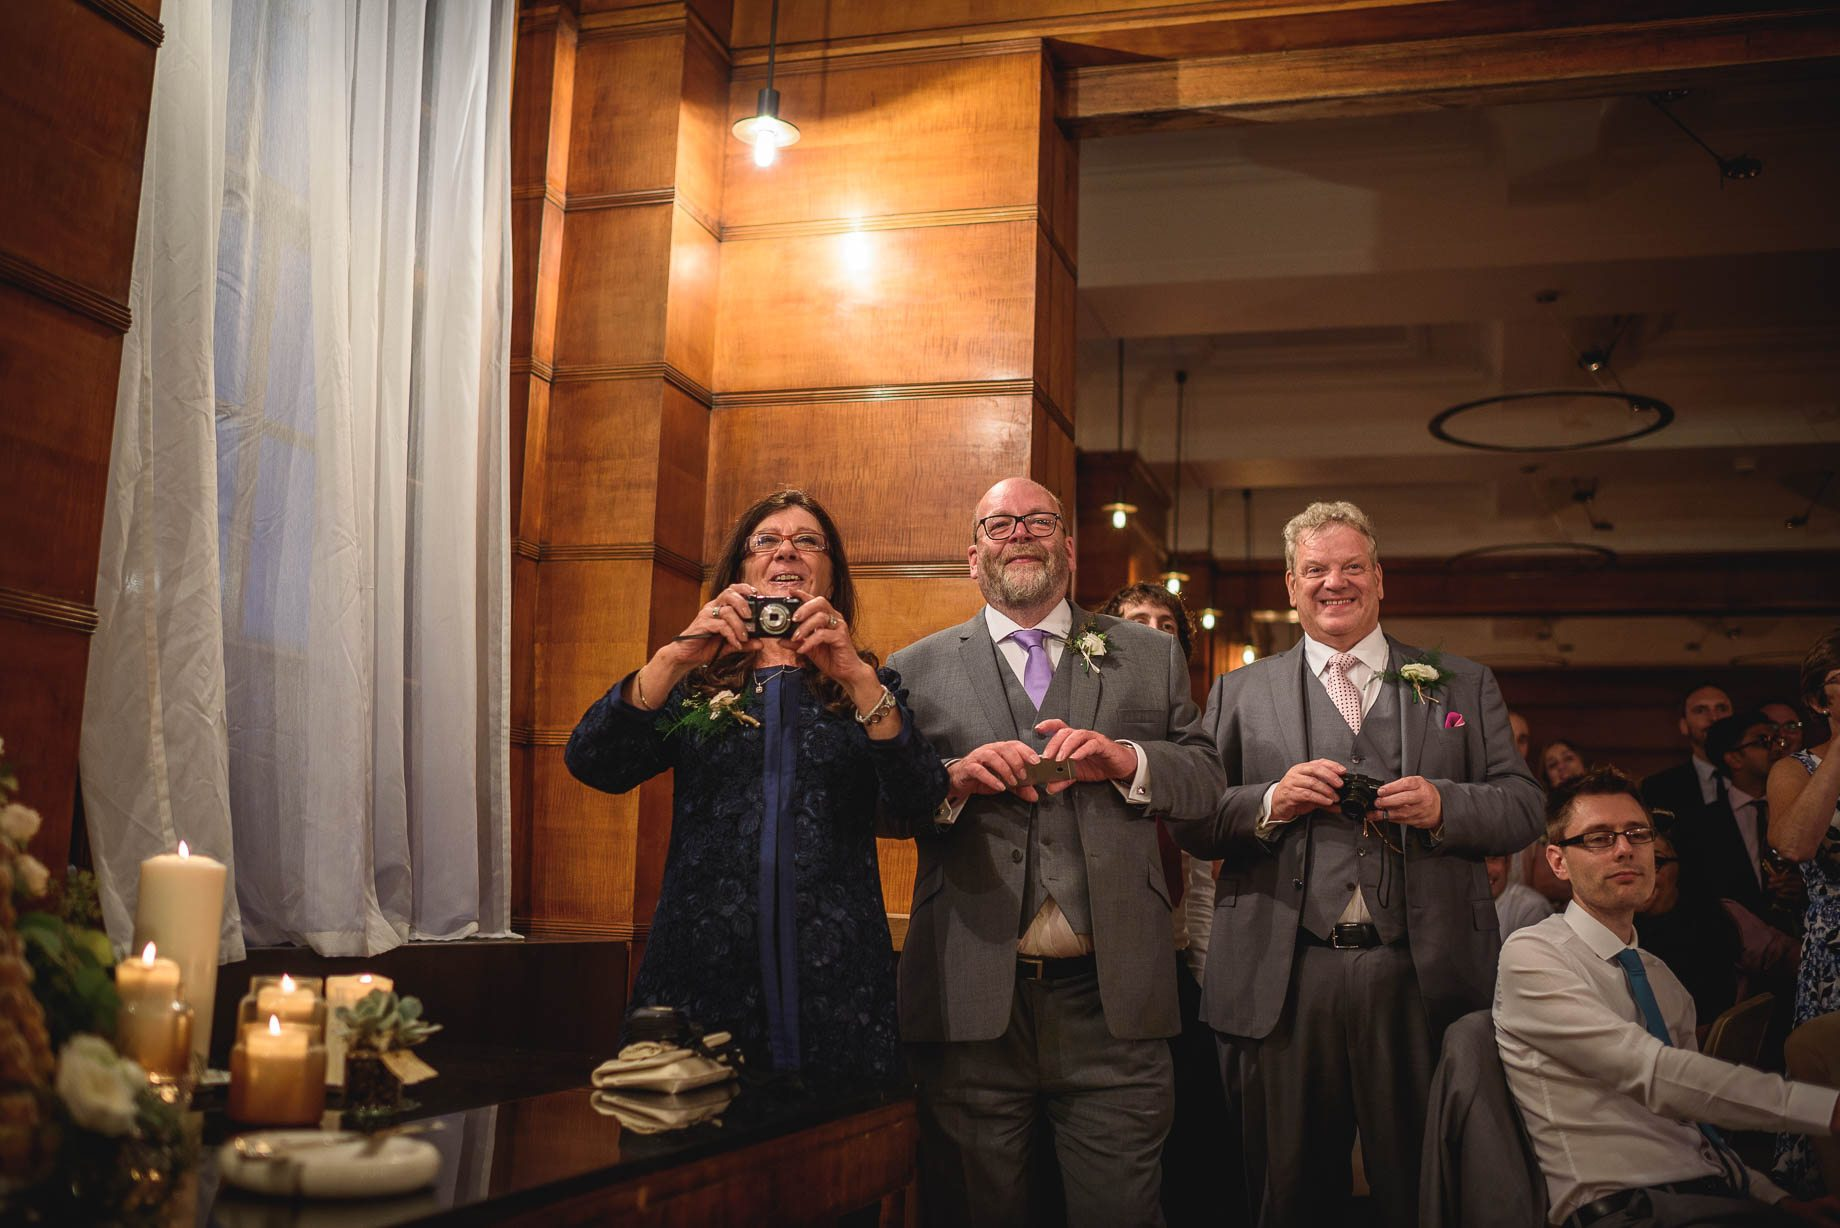 London Wedding Photography - Guy Collier Photography - LJ + Russell (153 of 155)